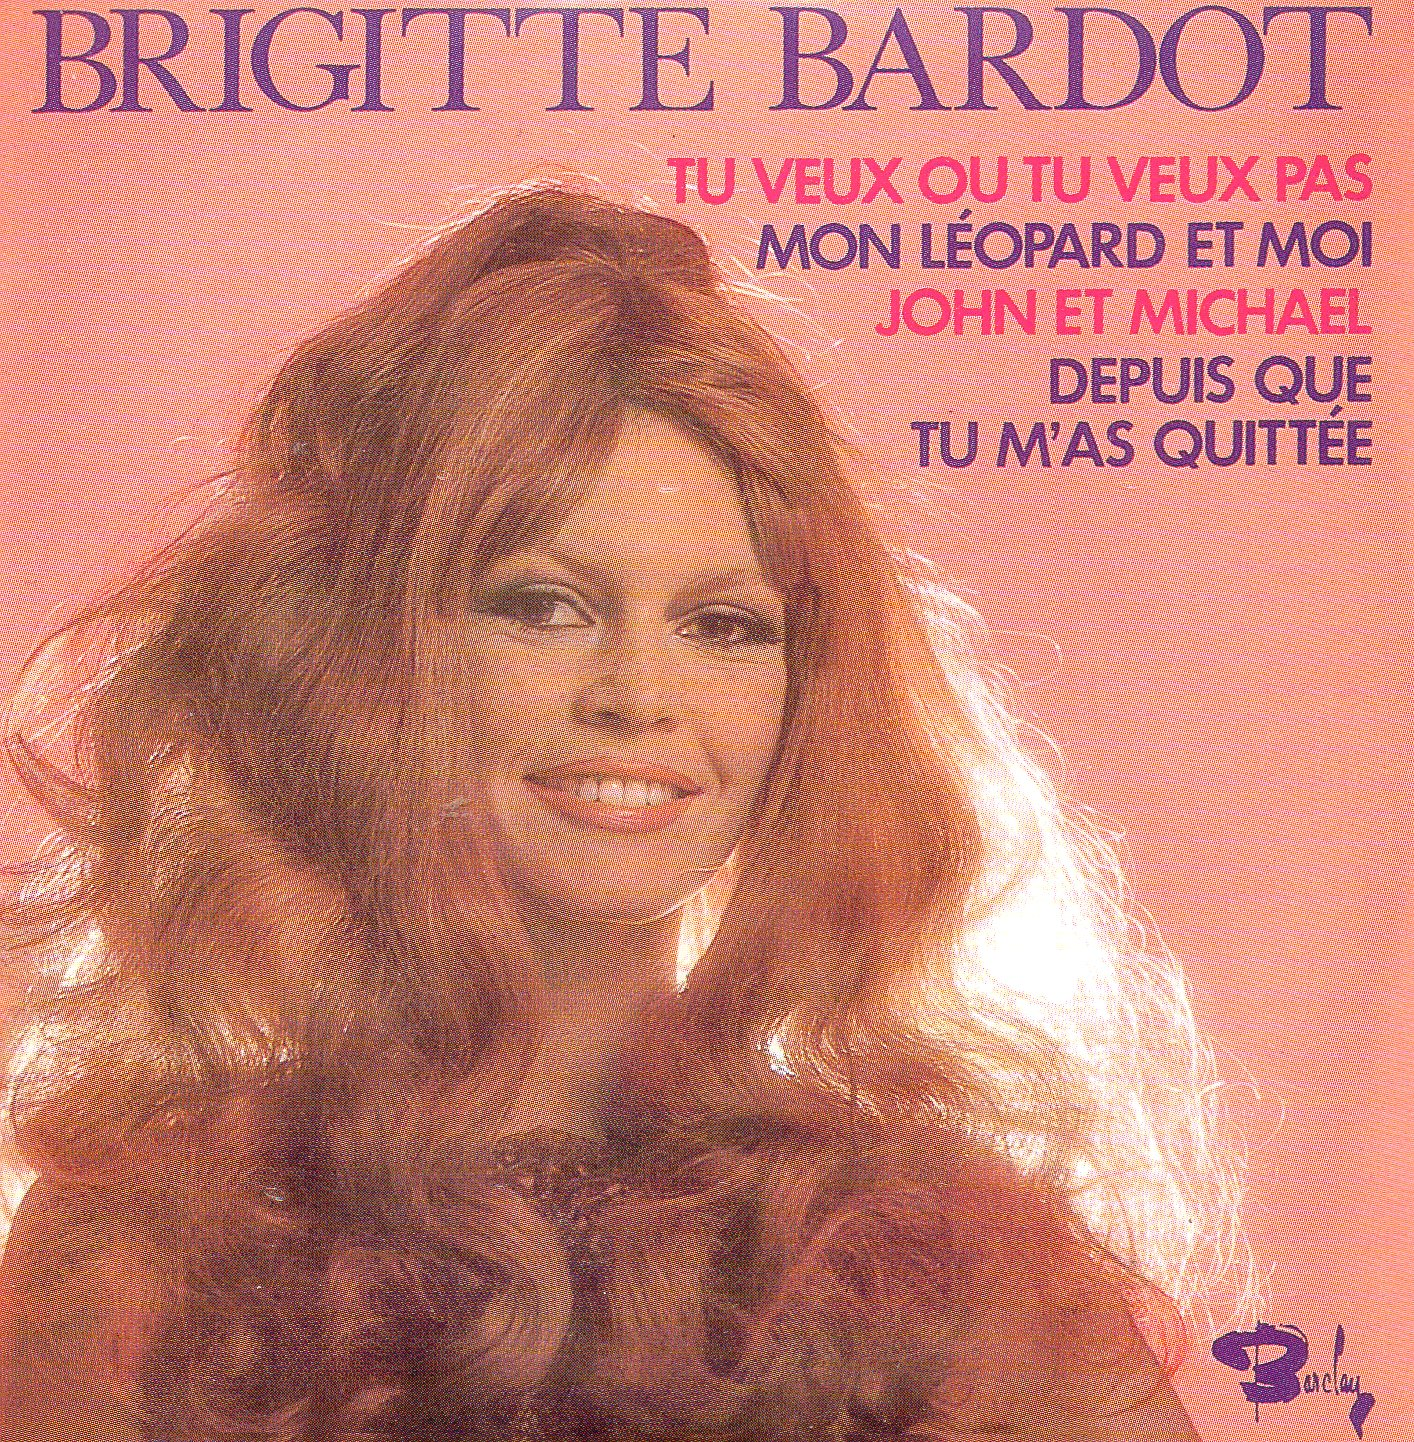 BRIGITTE BARDOT - Tu veux ou tu veux pas - EP REPLICA - 4-TRACK CARD SLEEVE - CD single